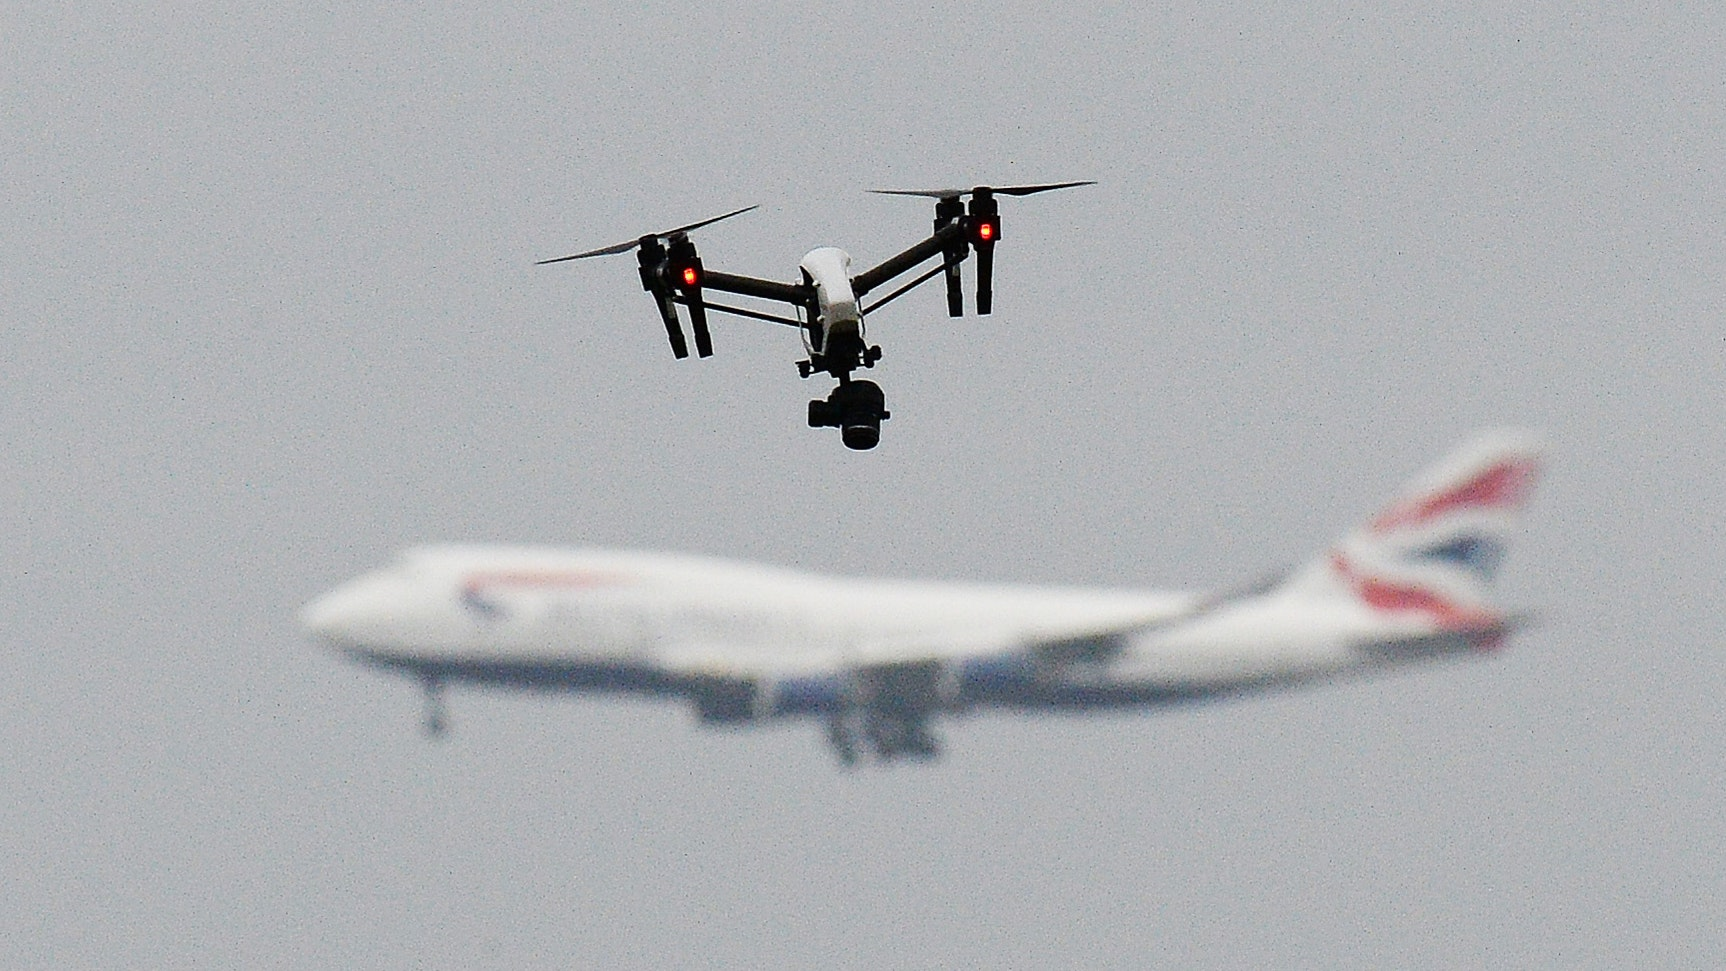 Flights grounded at London Heathrow after drone sighting